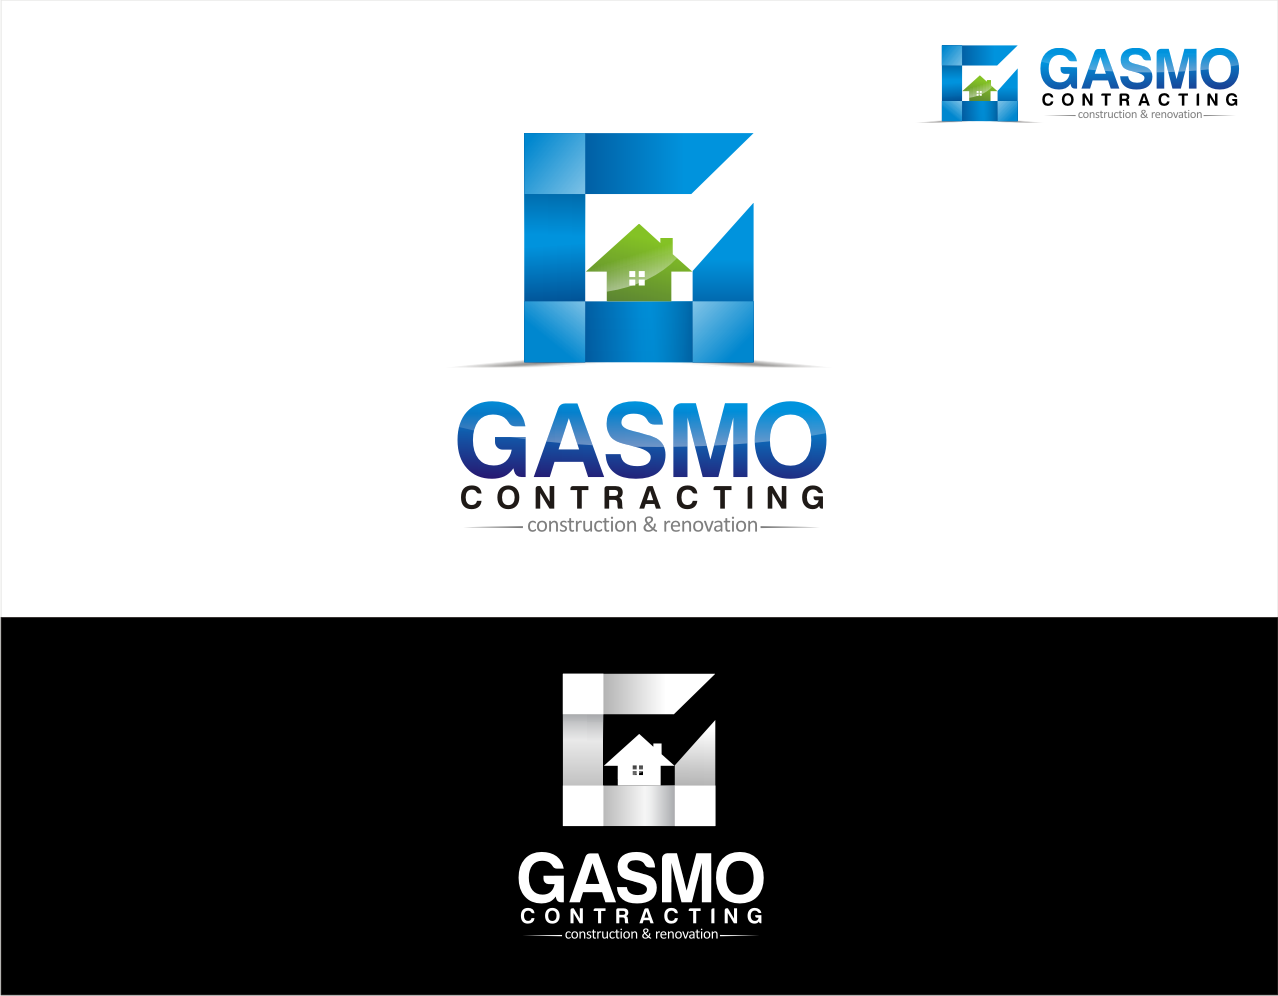 Logo Design by walangsangit - Entry No. 28 in the Logo Design Contest Professional Logo Design for Gasmo Contracting.